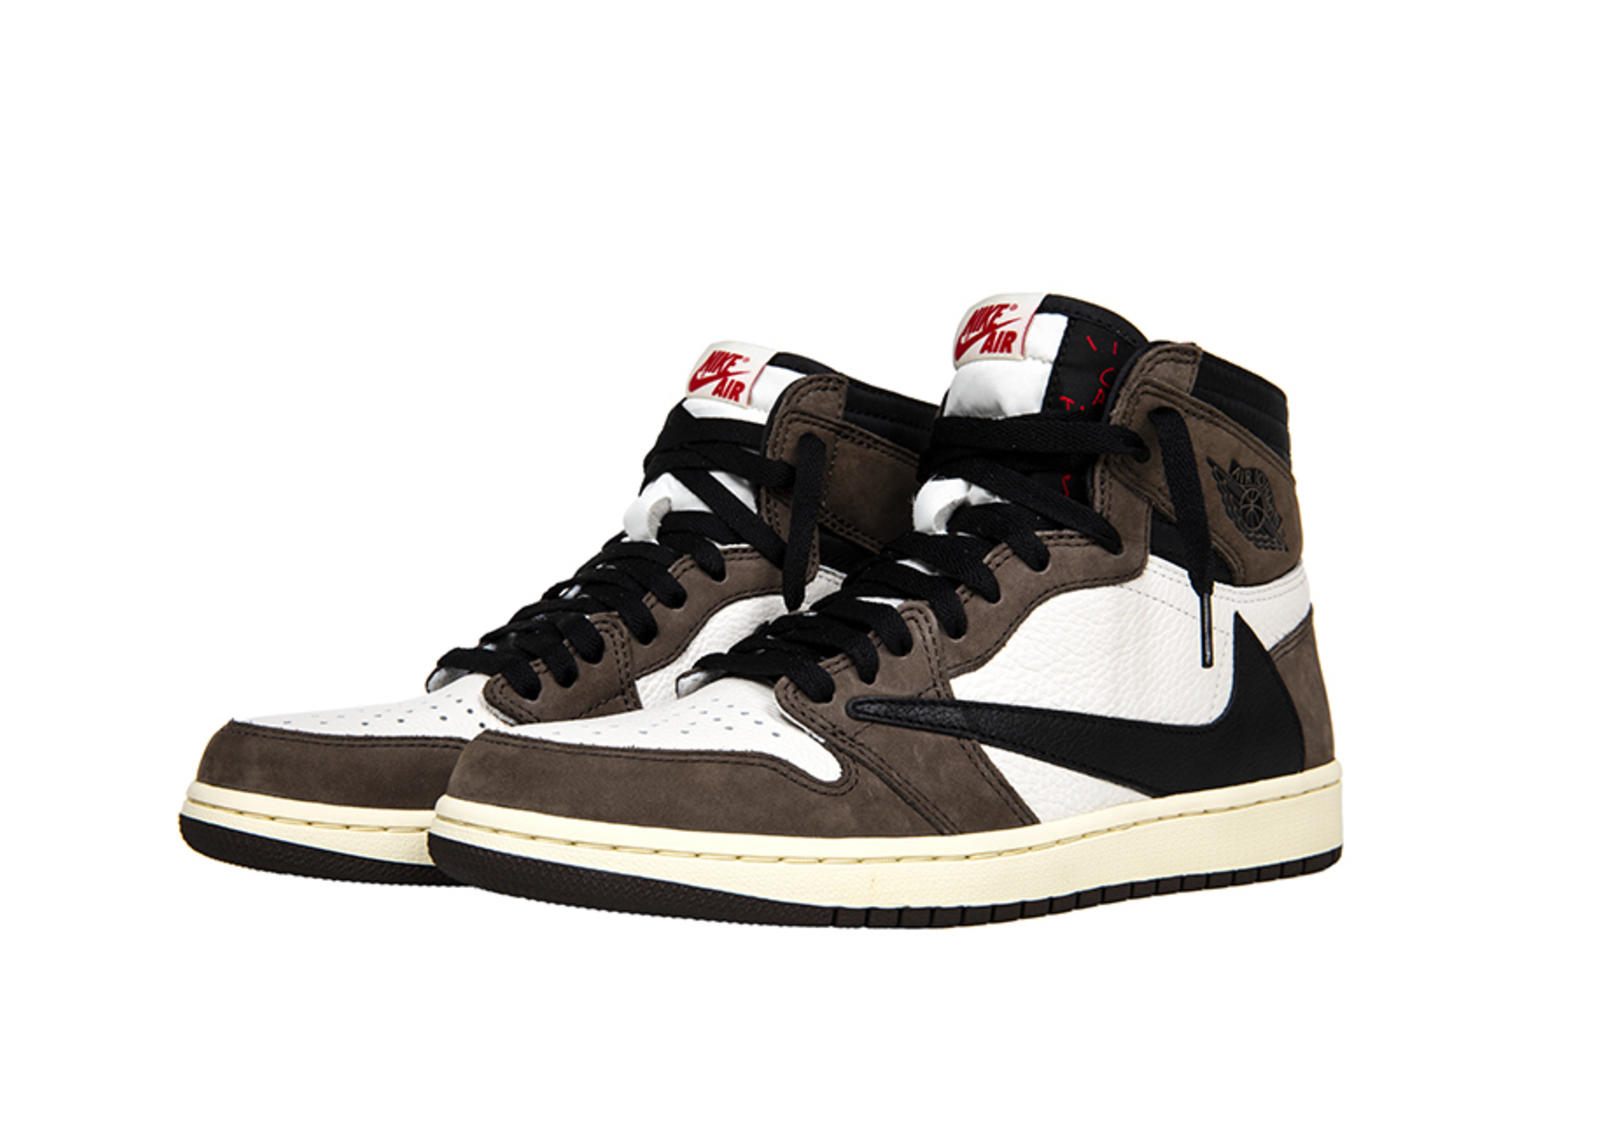 buy popular d8e9d 908b6 Travis Scott Air Jordan I High OG and Apparel Collection ...